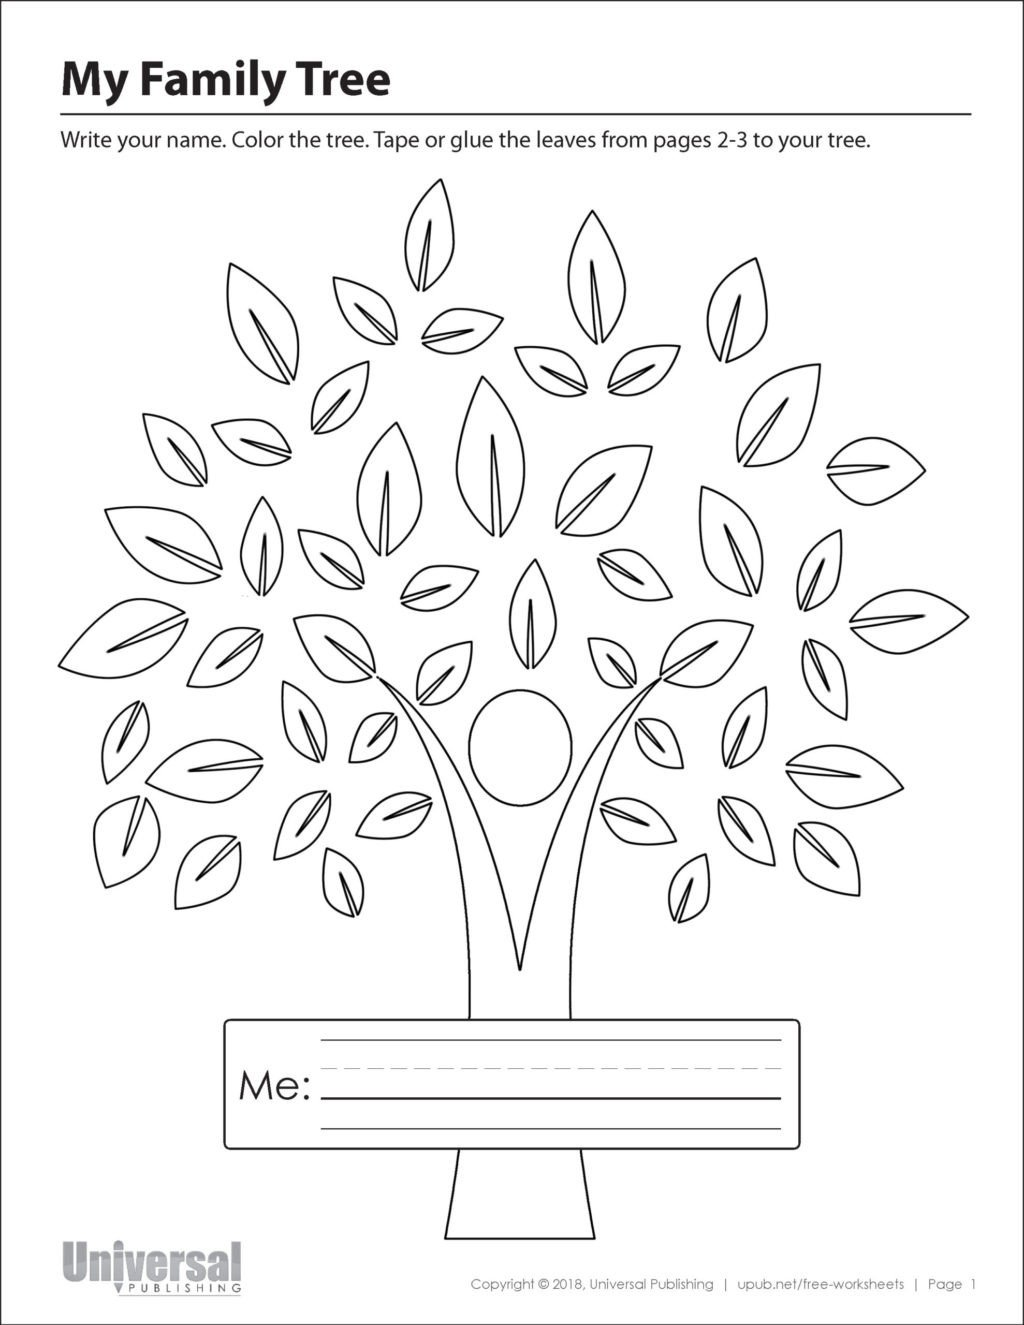 kindergarten worksheets math answer solver free printable for grade reading prehension on health and fitness 6th division hard games social 1024x1325